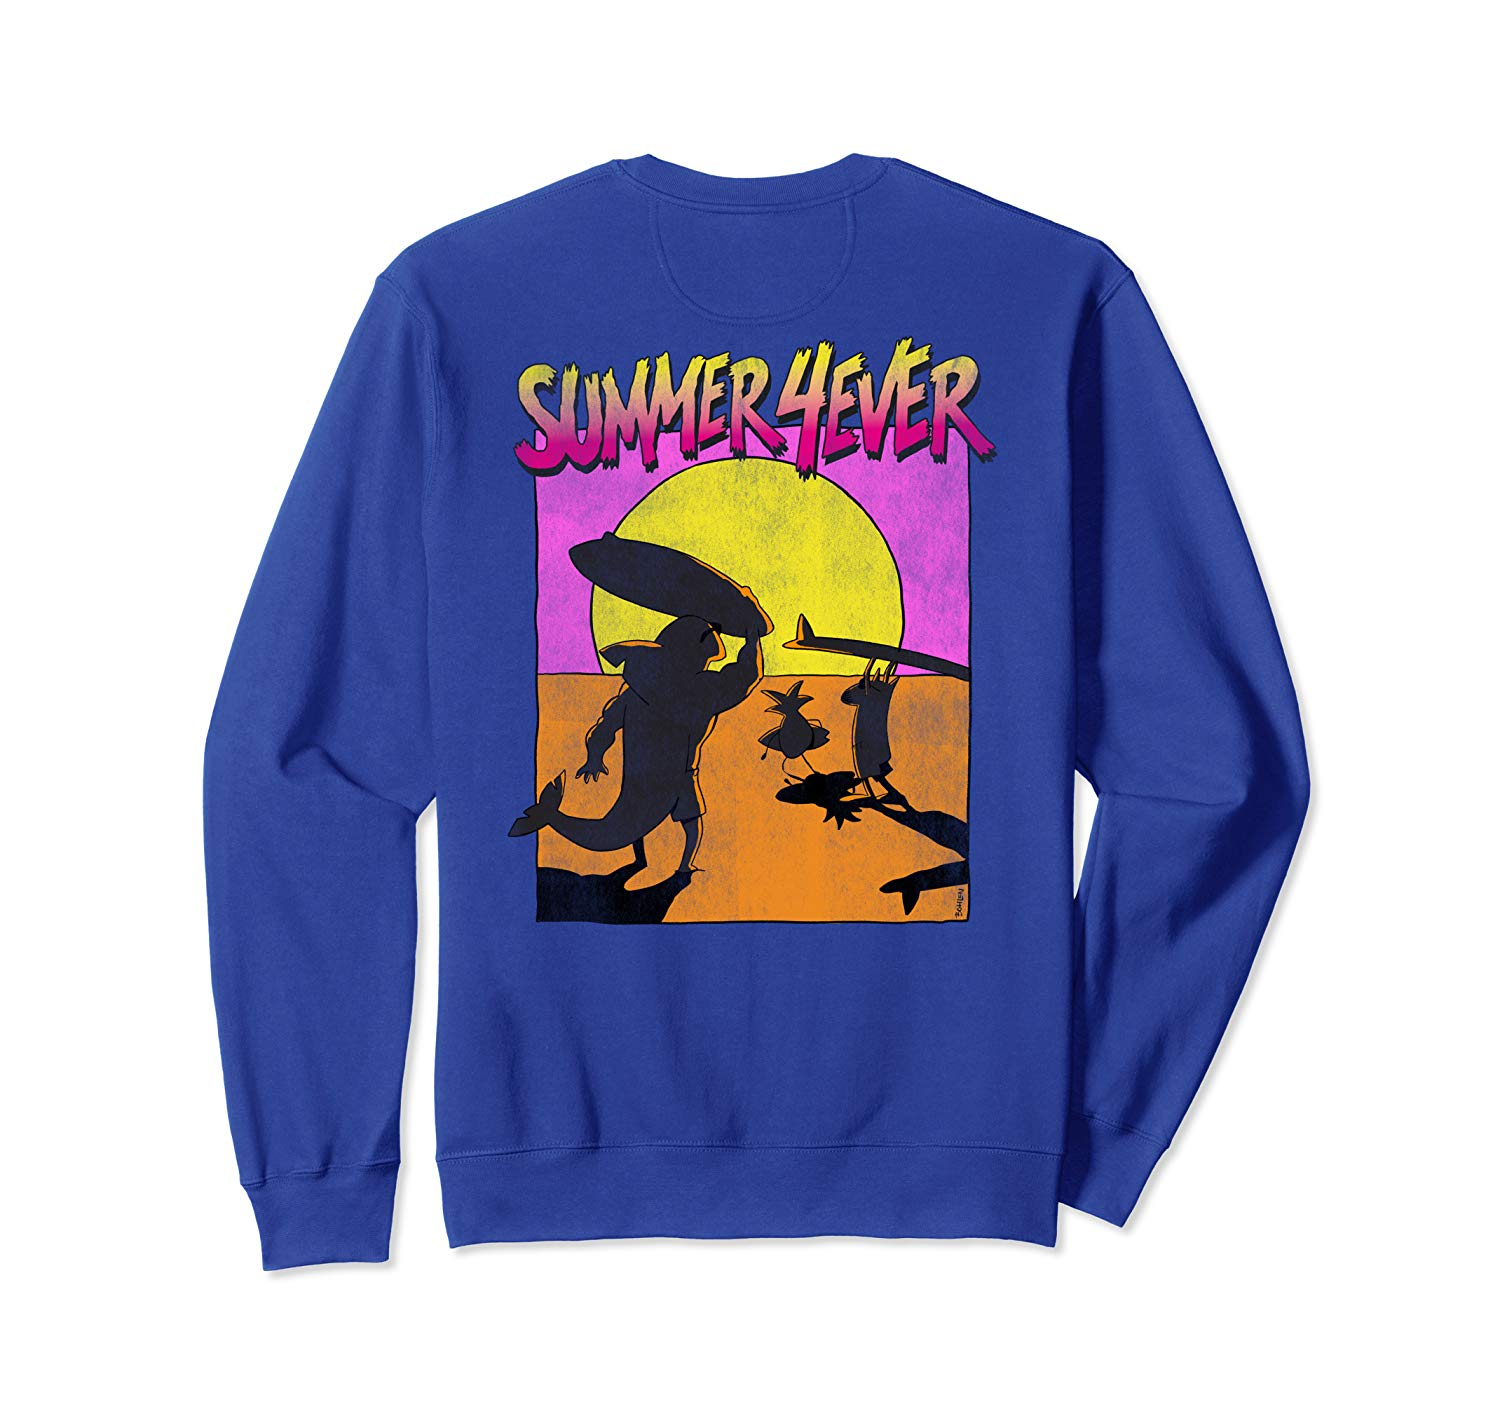 T-Shirt: Summer 4ever Funny 80s Style Surf Design Sweatshirt